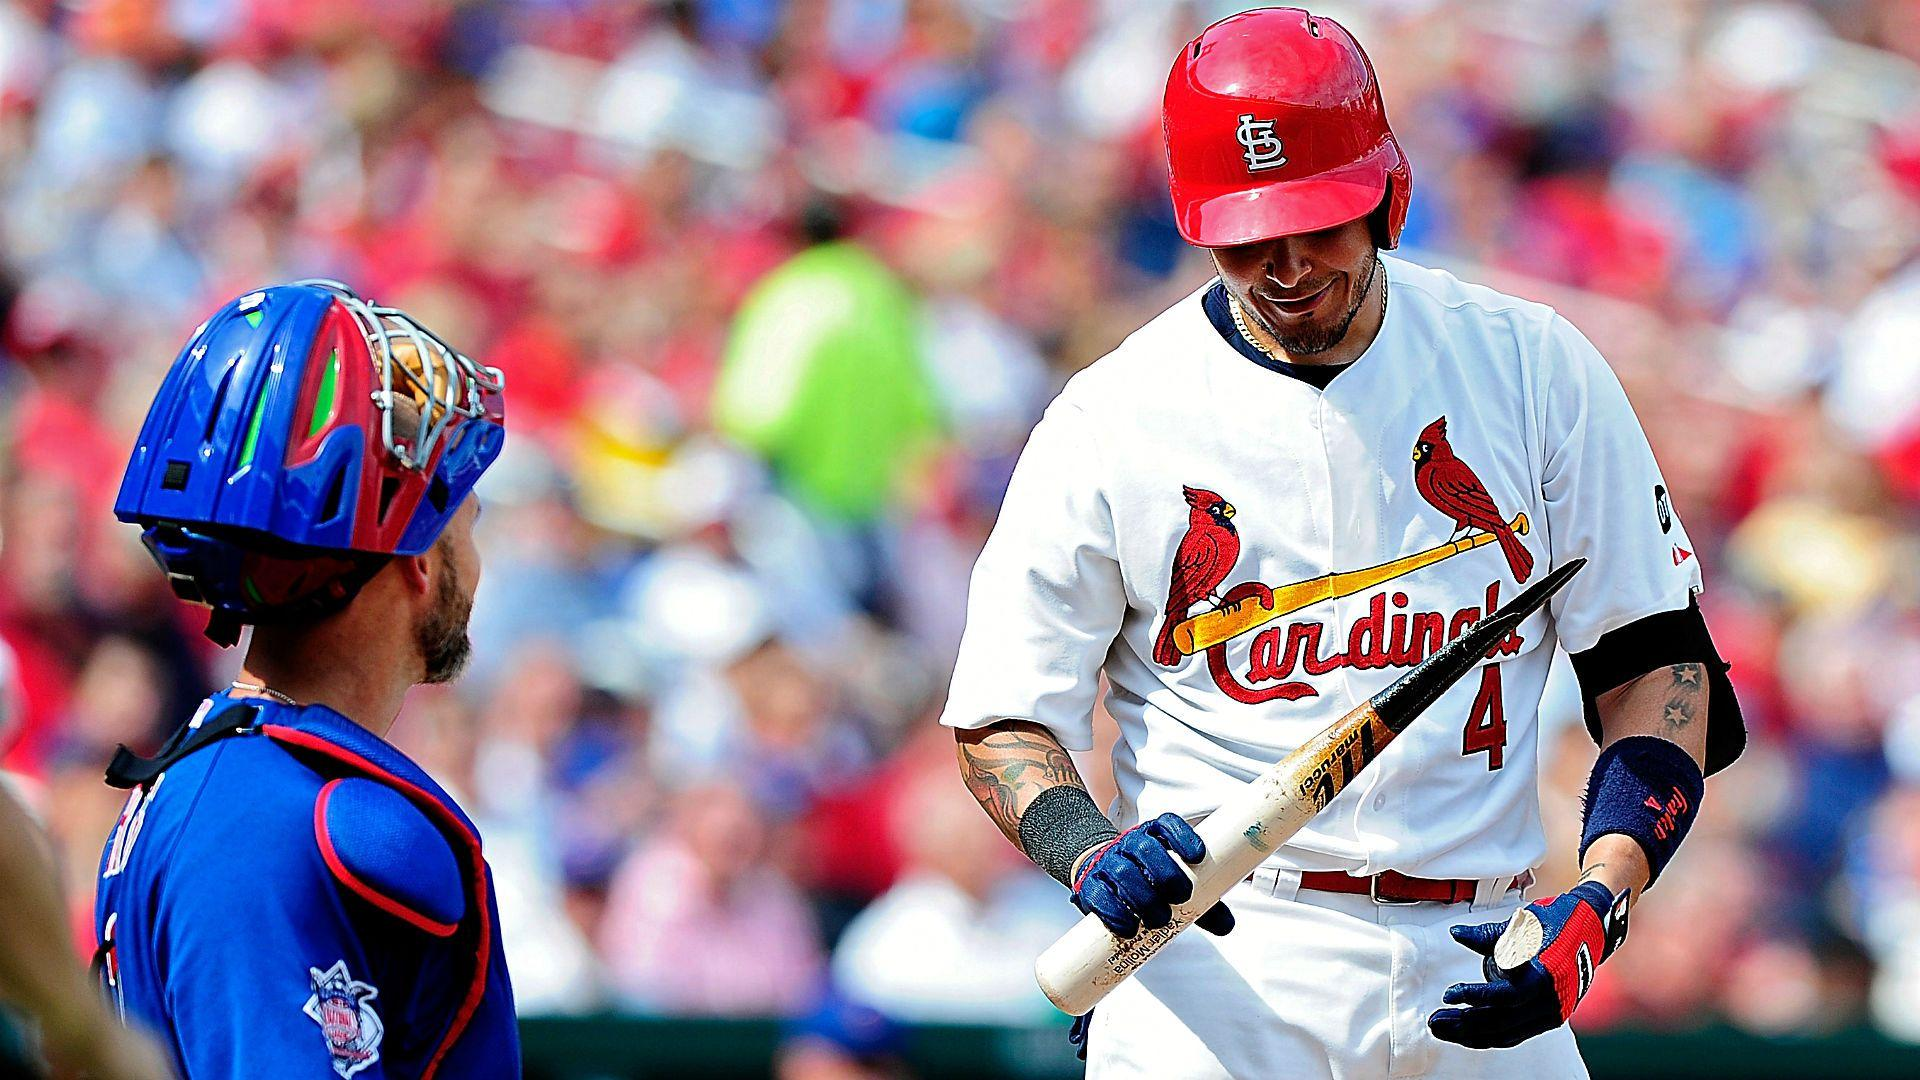 Yadier Molina shattered his bat while attempting to tap home plate